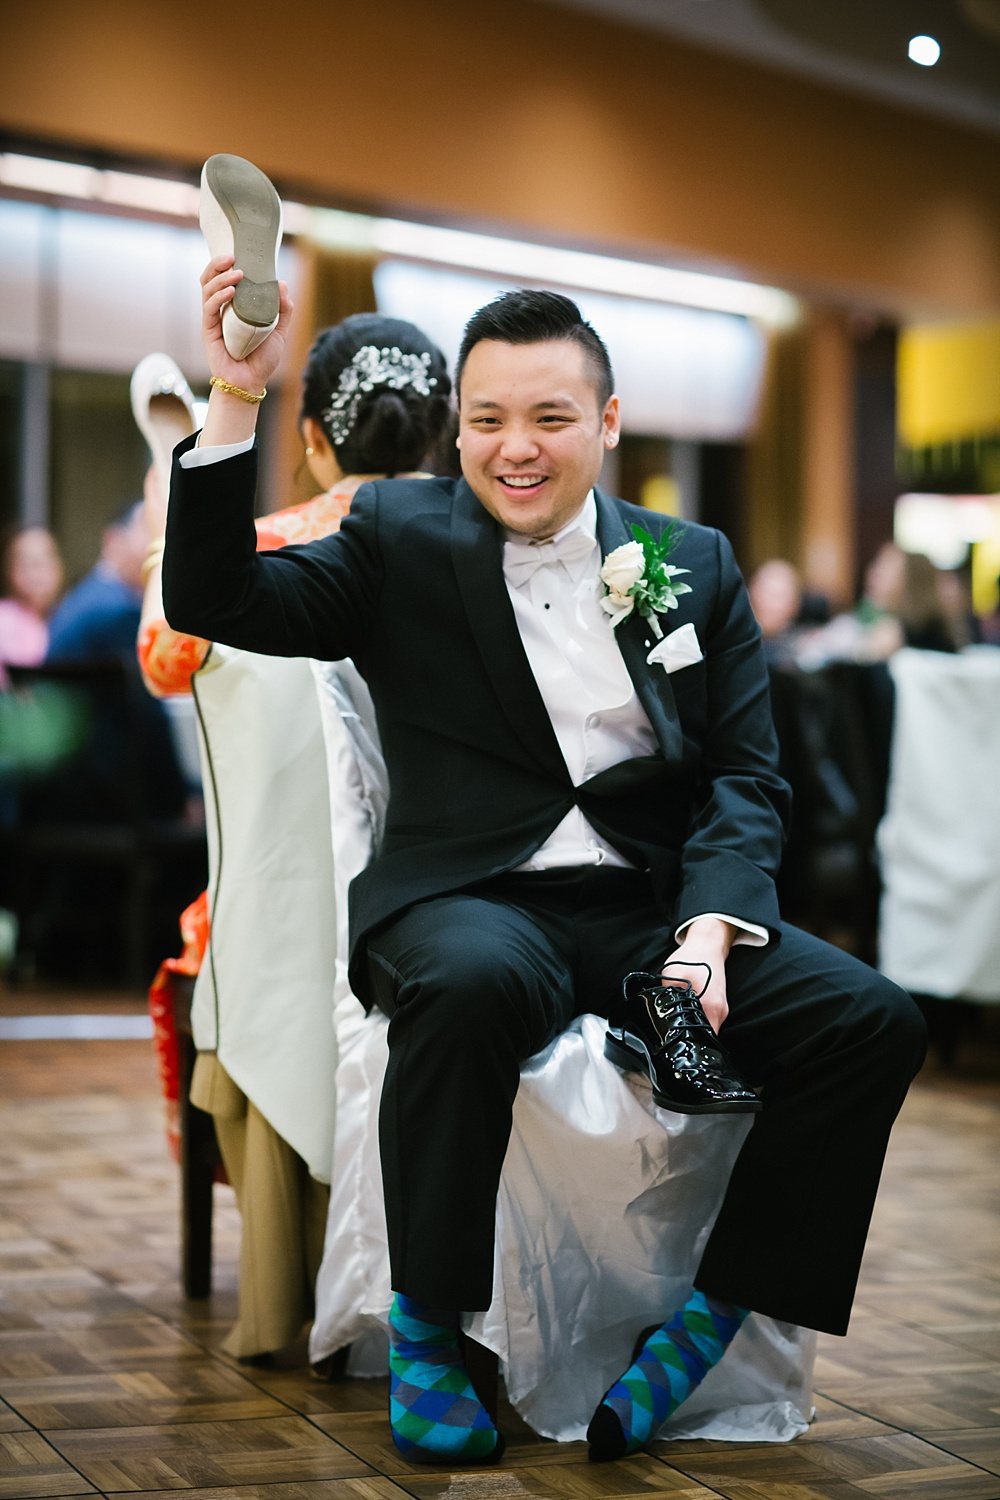 New Westminster Kirin Starlight Reception Glenbrook Park Amenities Centre Ceremony New Westminster Quay River Walk New West Wedding Photographer Traditional Chinese Wedding Vancouver BC Photography_0018.jpg